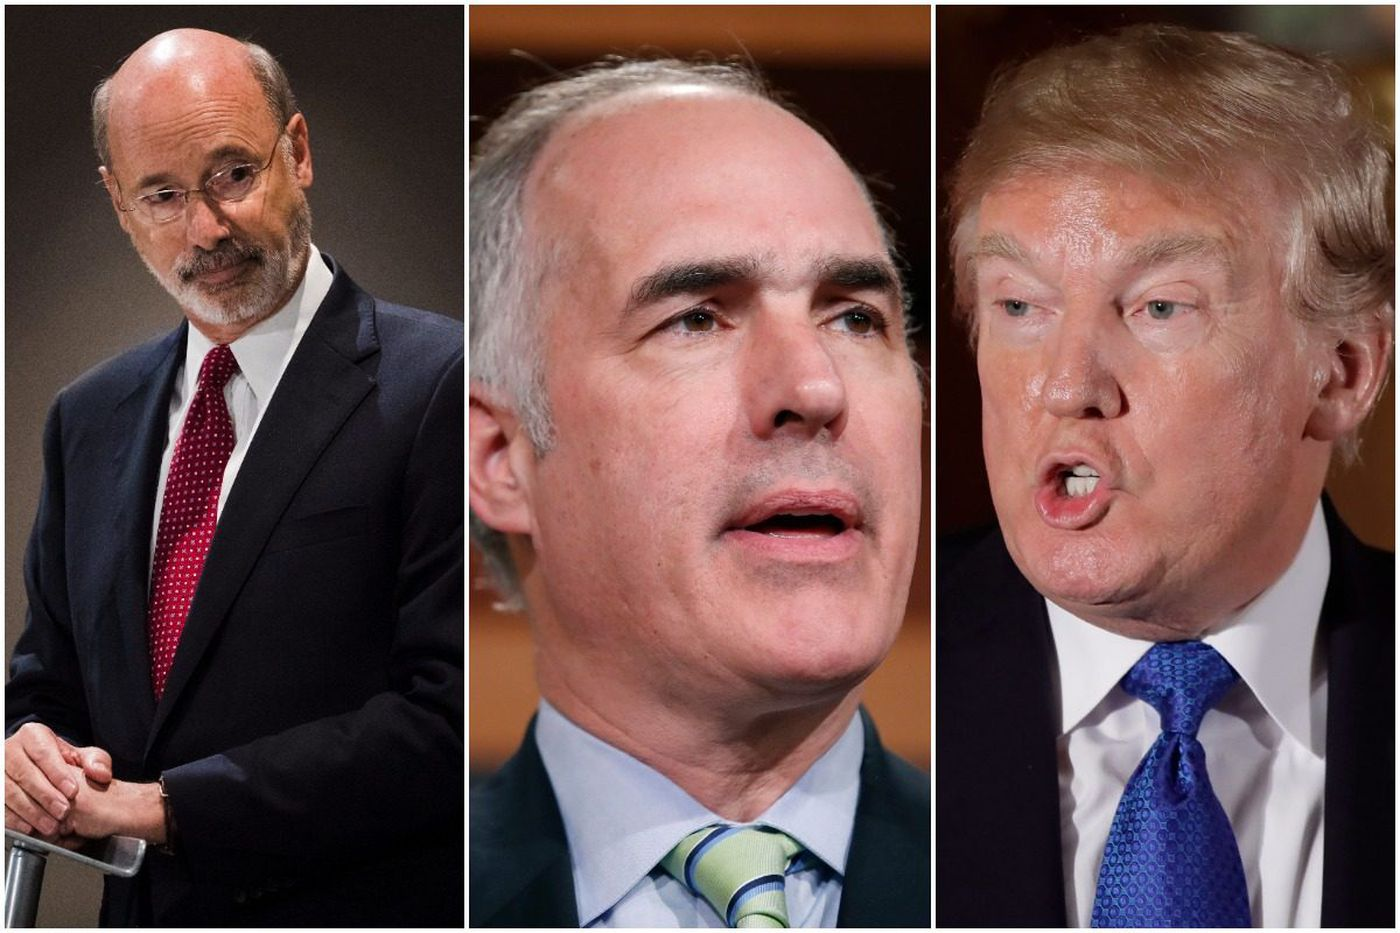 Up next: Wolf, Casey, and President Trump | Baer